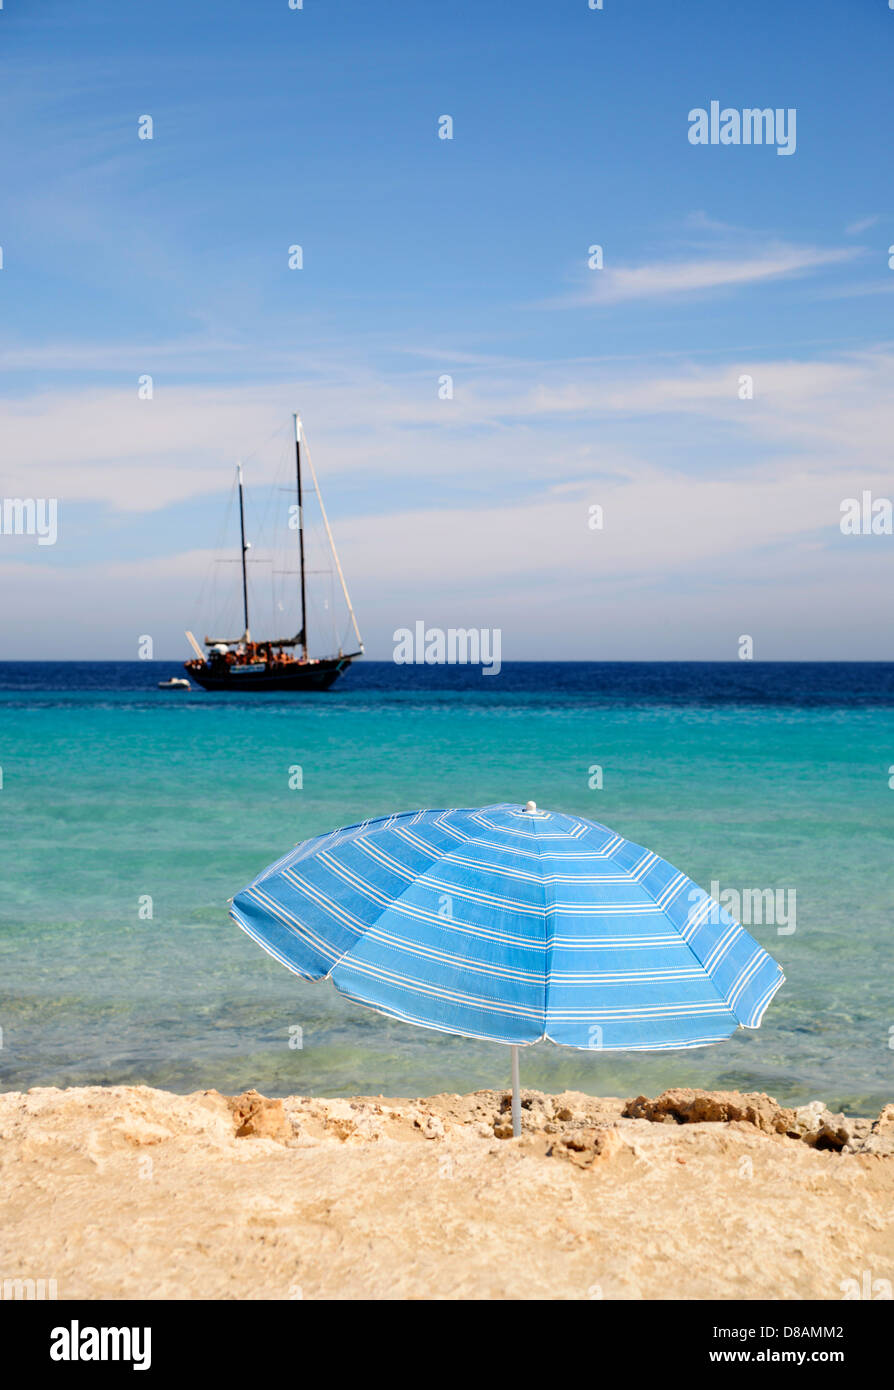 Playa de ses Illetes, Formentera, Balearic Islands, Spain - Stock Image